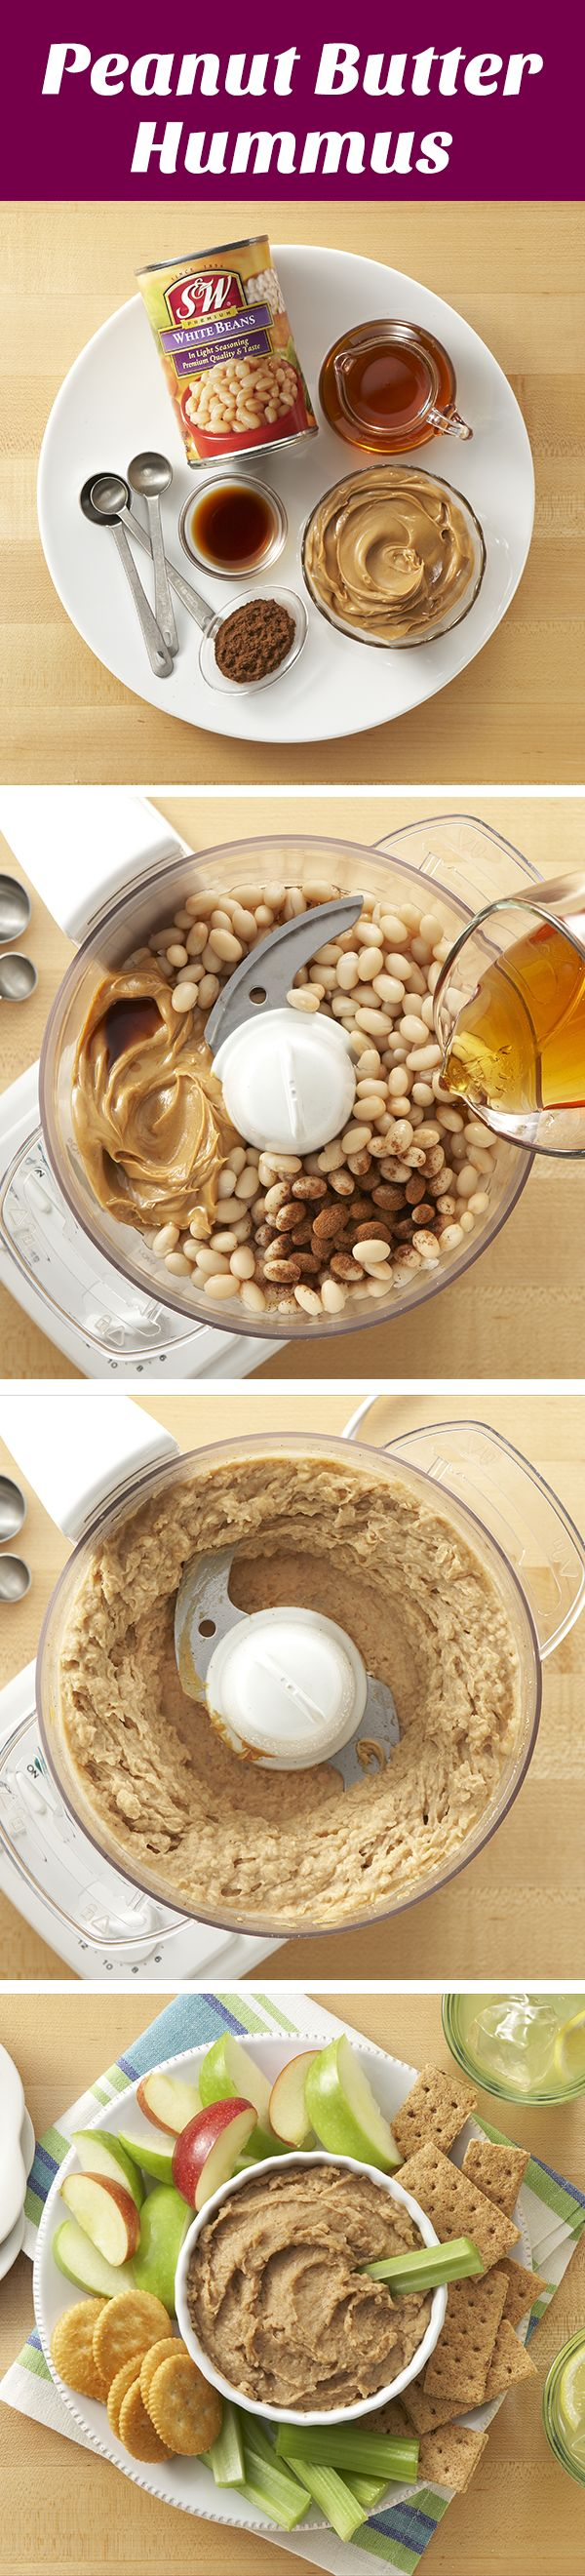 Peanut Butter Hummus | Serve this protein-packed hummus with apple slices or graham crackers for a sweet summer treat!